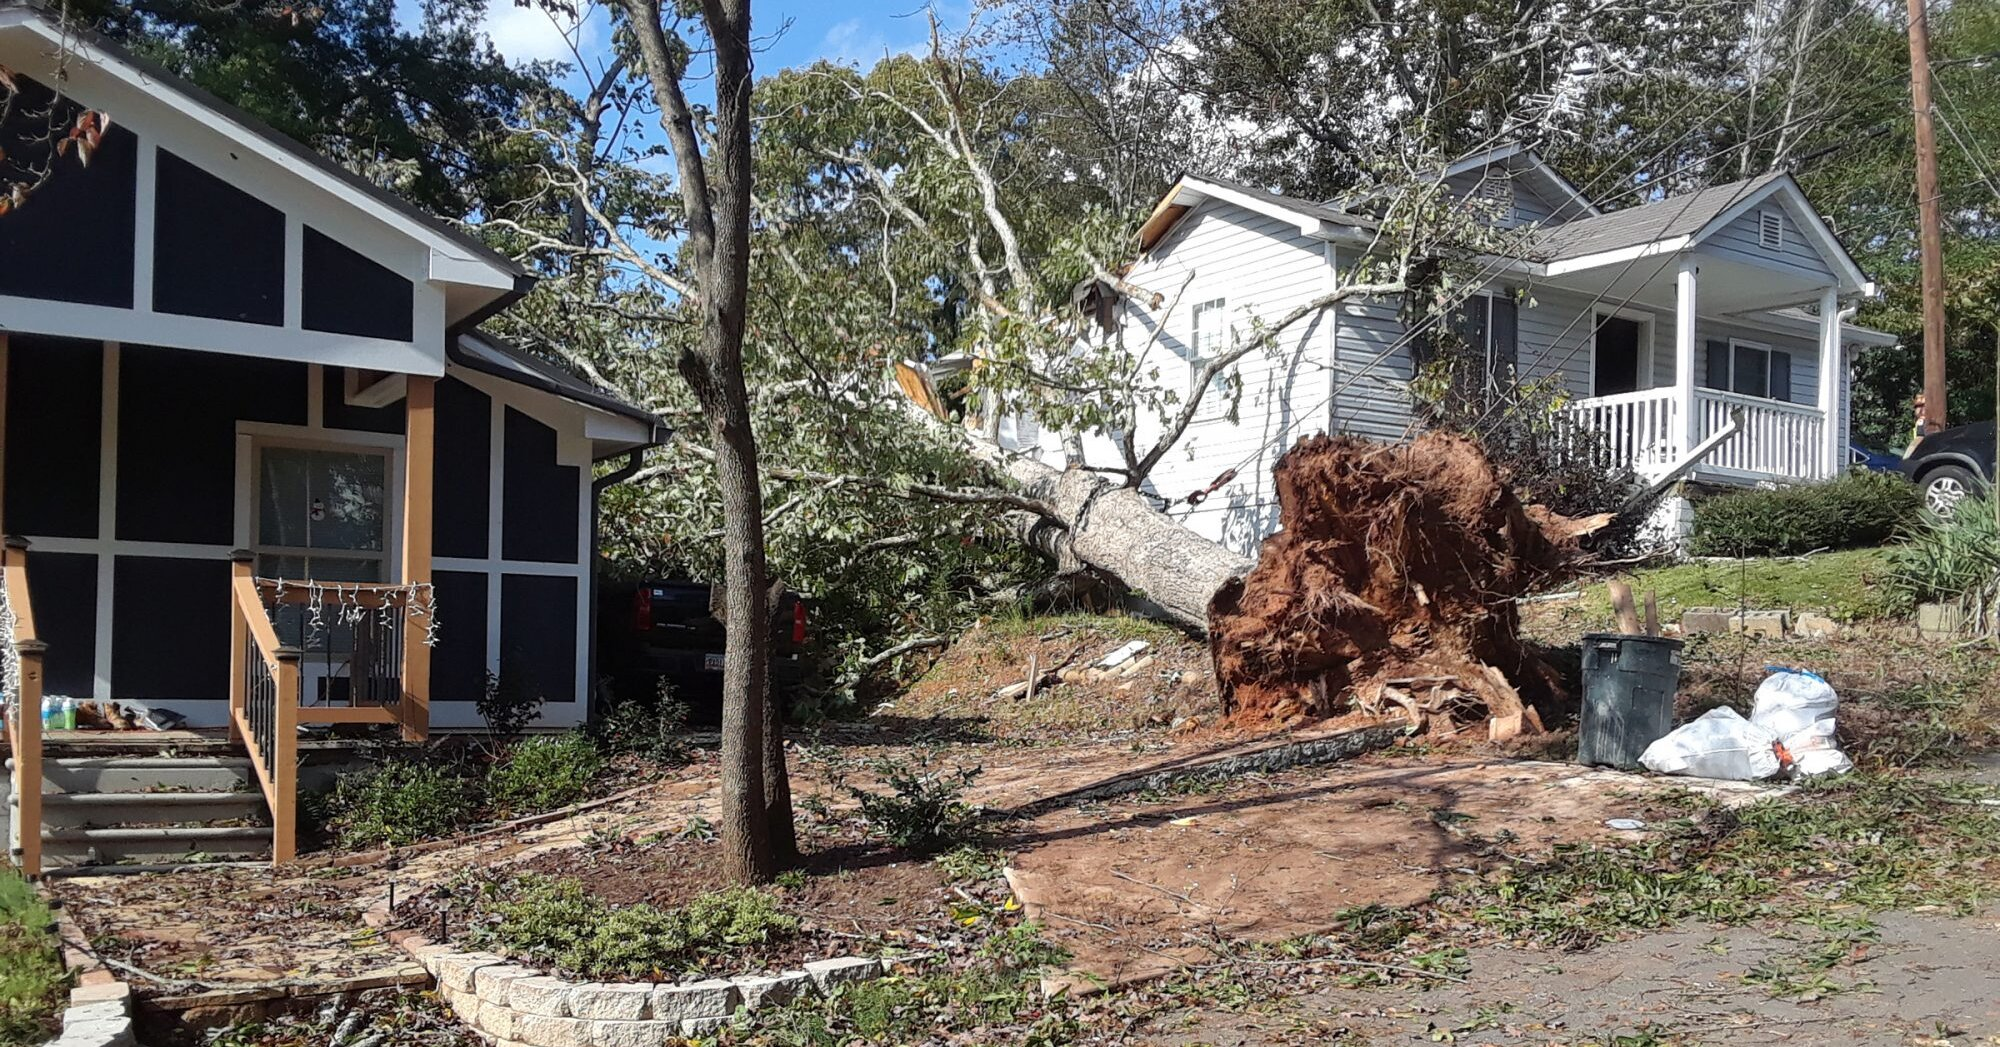 Couple in Their 20s Killed After Tree Falls on House in Georgia While They're Sleeping